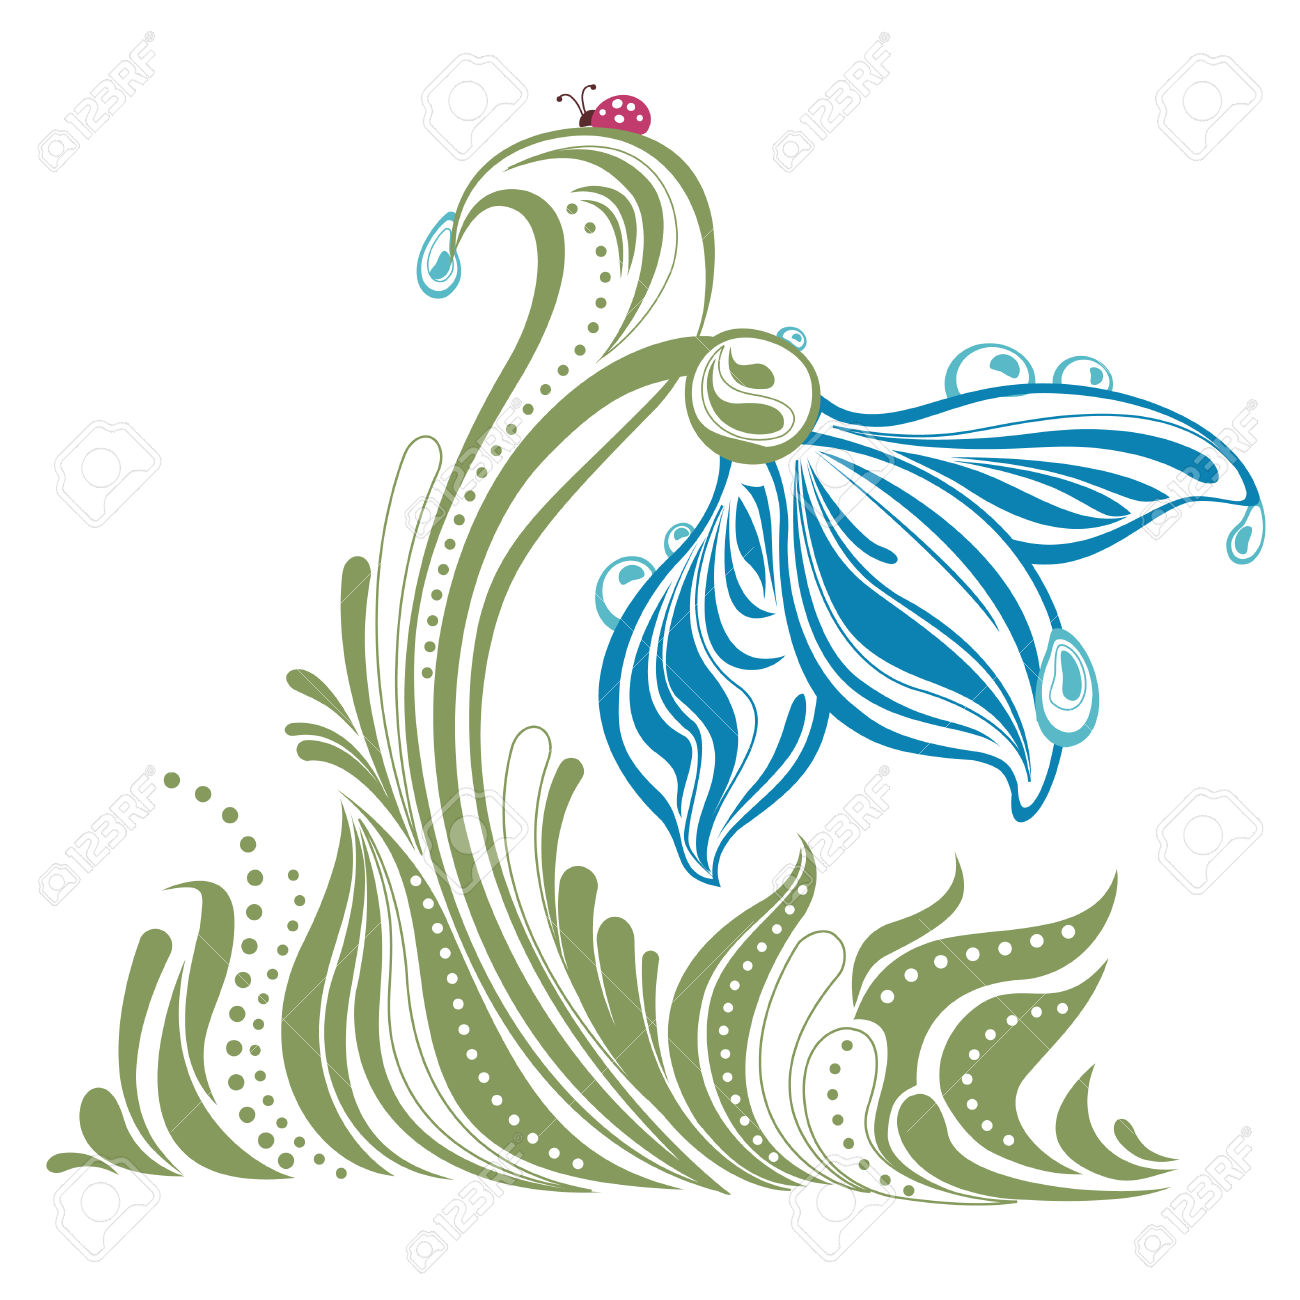 Beautiful Snow Drop With Dew Drops Illustration Royalty Free.